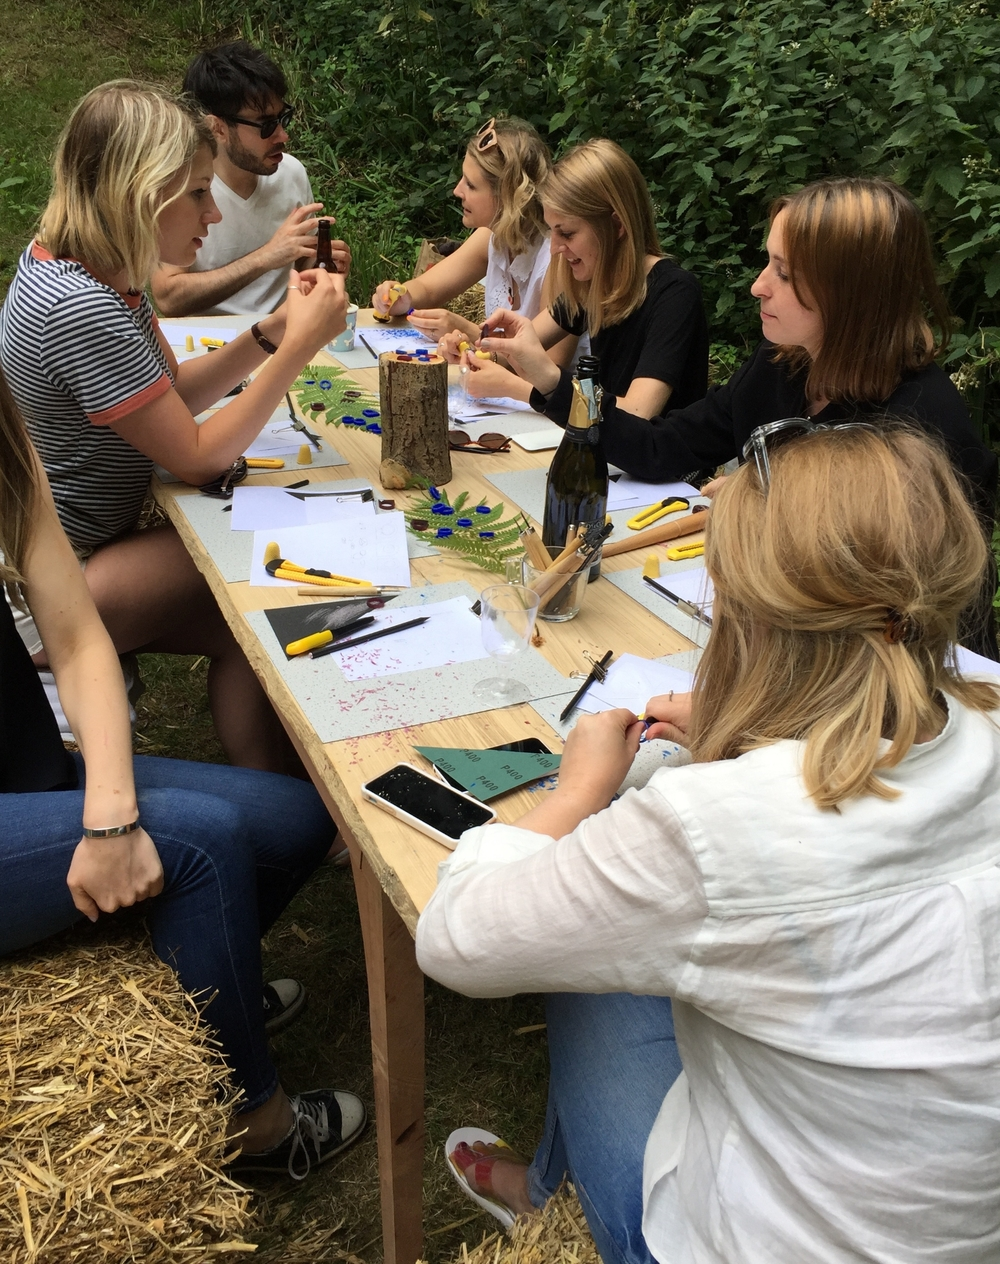 Workbench in the woods with Kirstie MacLaren and Katie Woodward; some serious concentration faces